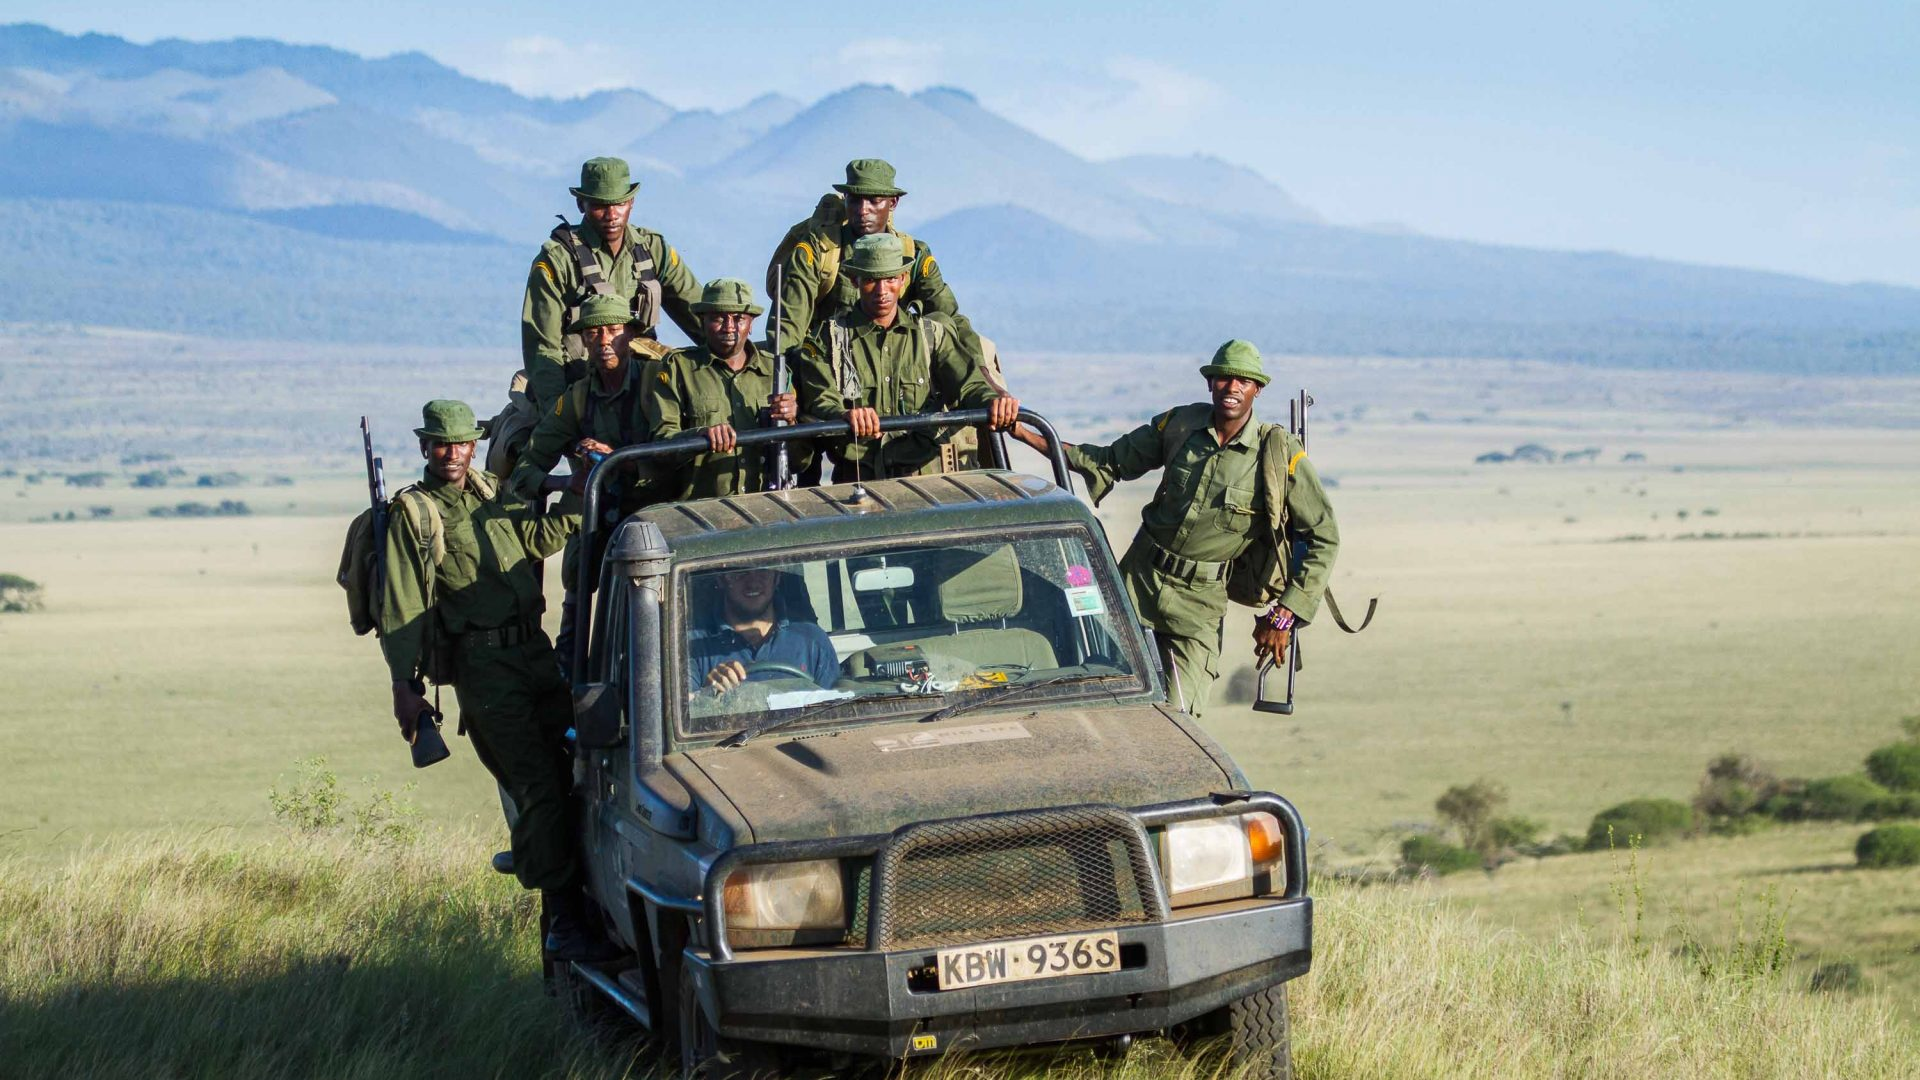 Rangers cross the plains in Kenya where they work.